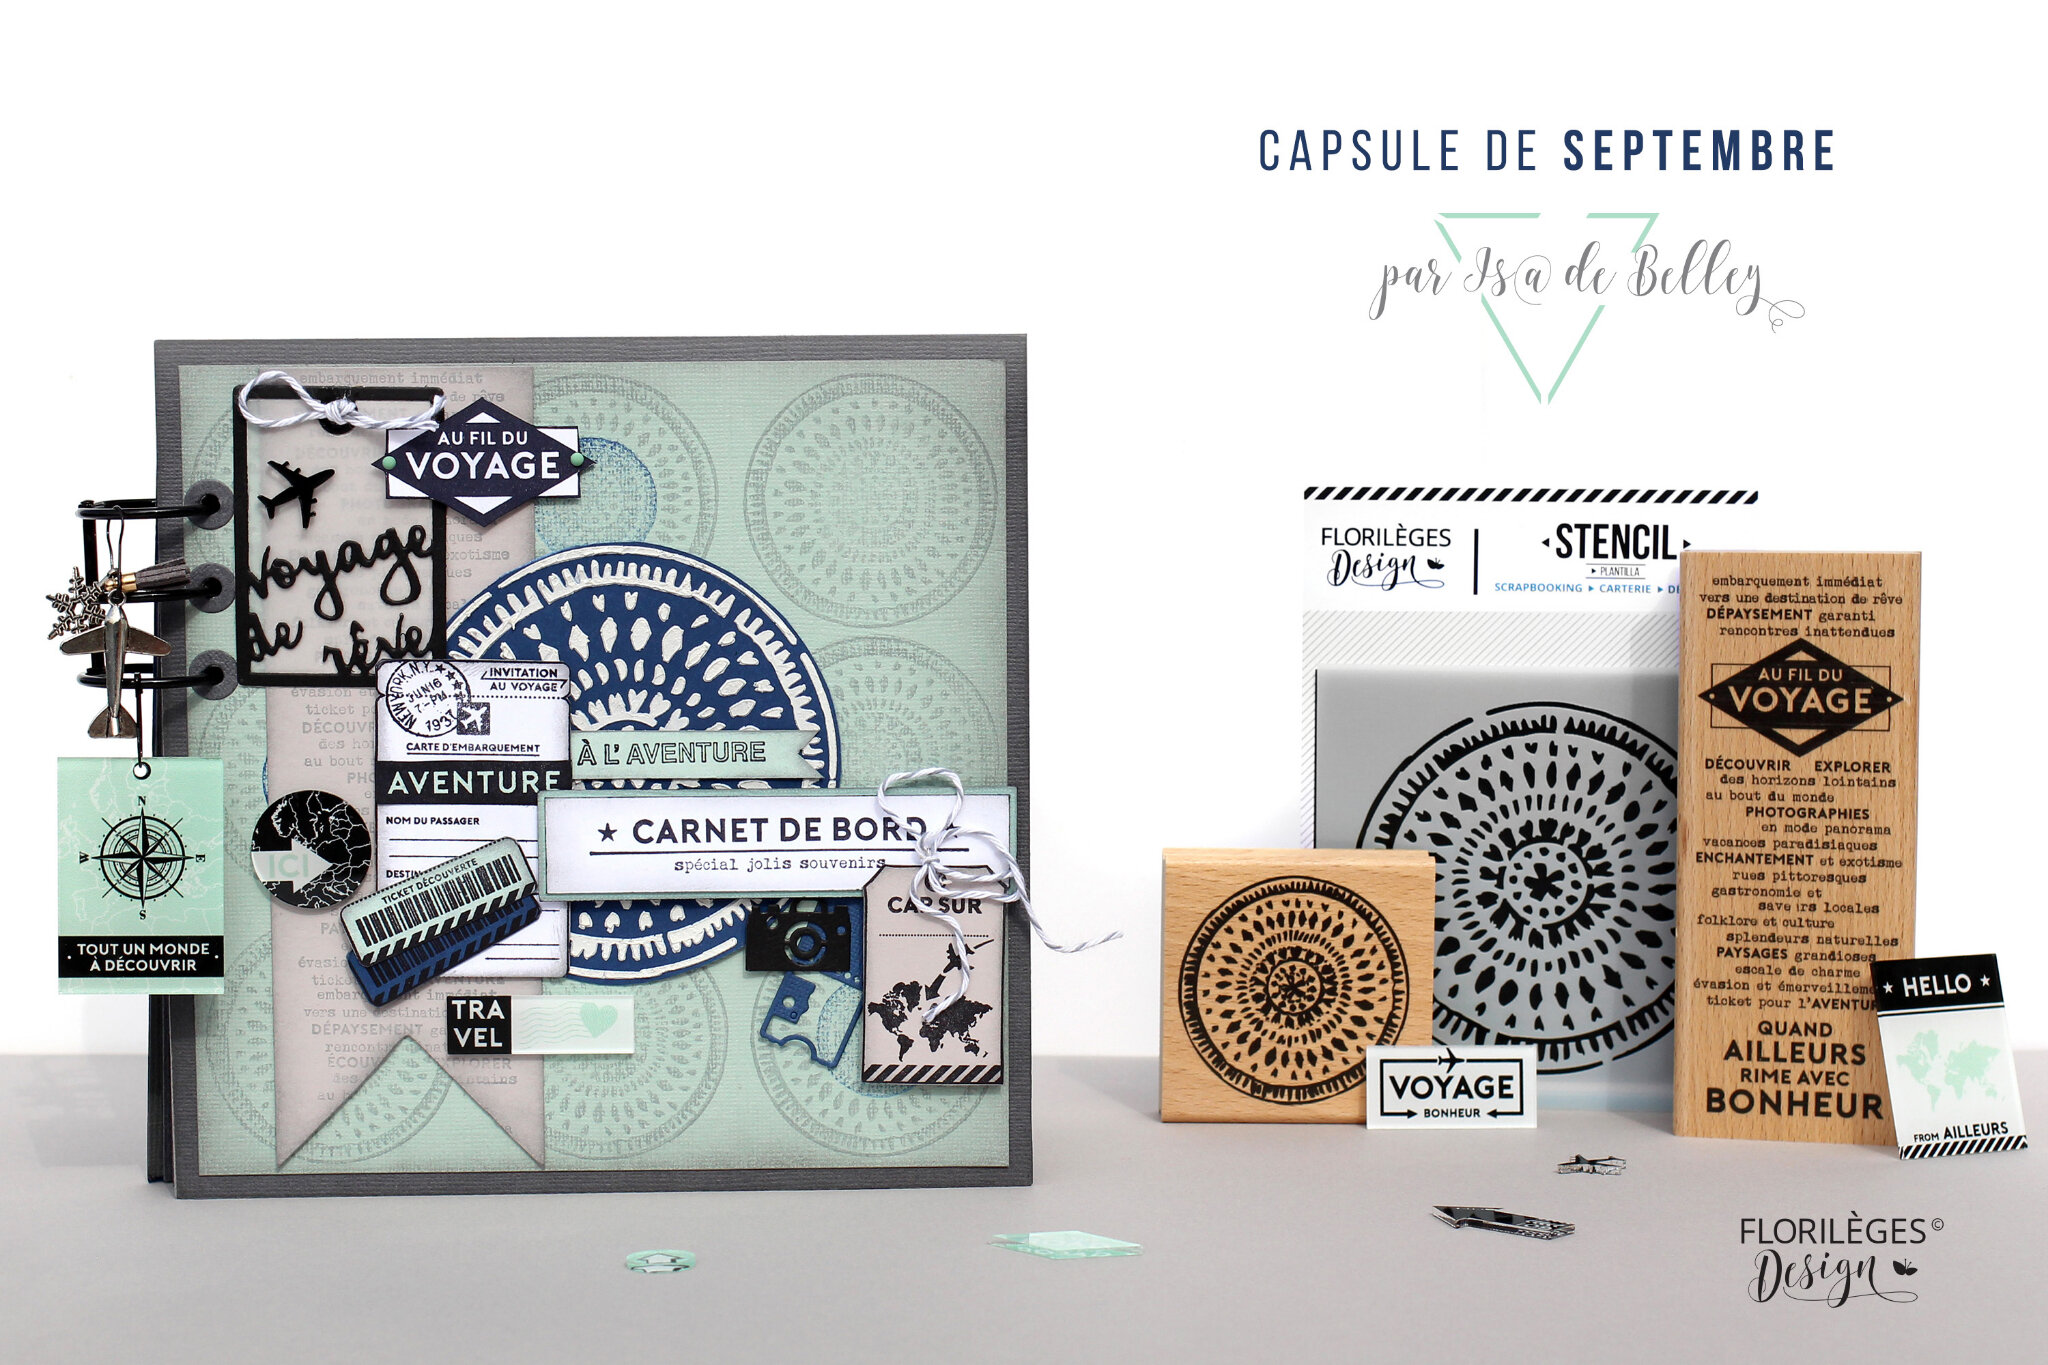 La Capsule de Septembre 2018 scrapée par Is@ de Belley